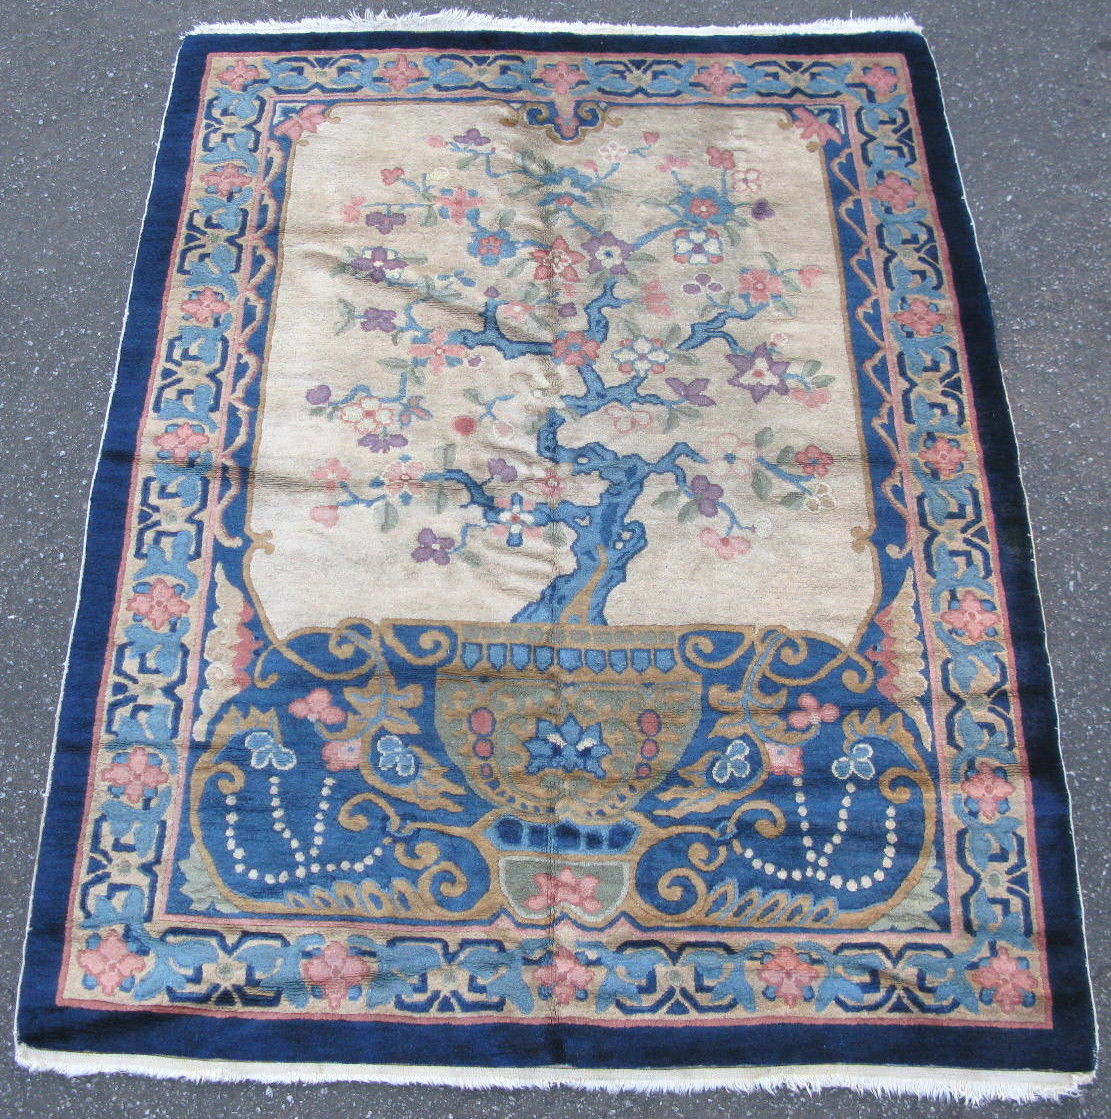 4'1 x 5'6 Hand-knotted Tree of Life Wool Antique Chinese Art Deco Fette Li Blue Peking Rug 12980486 (1)